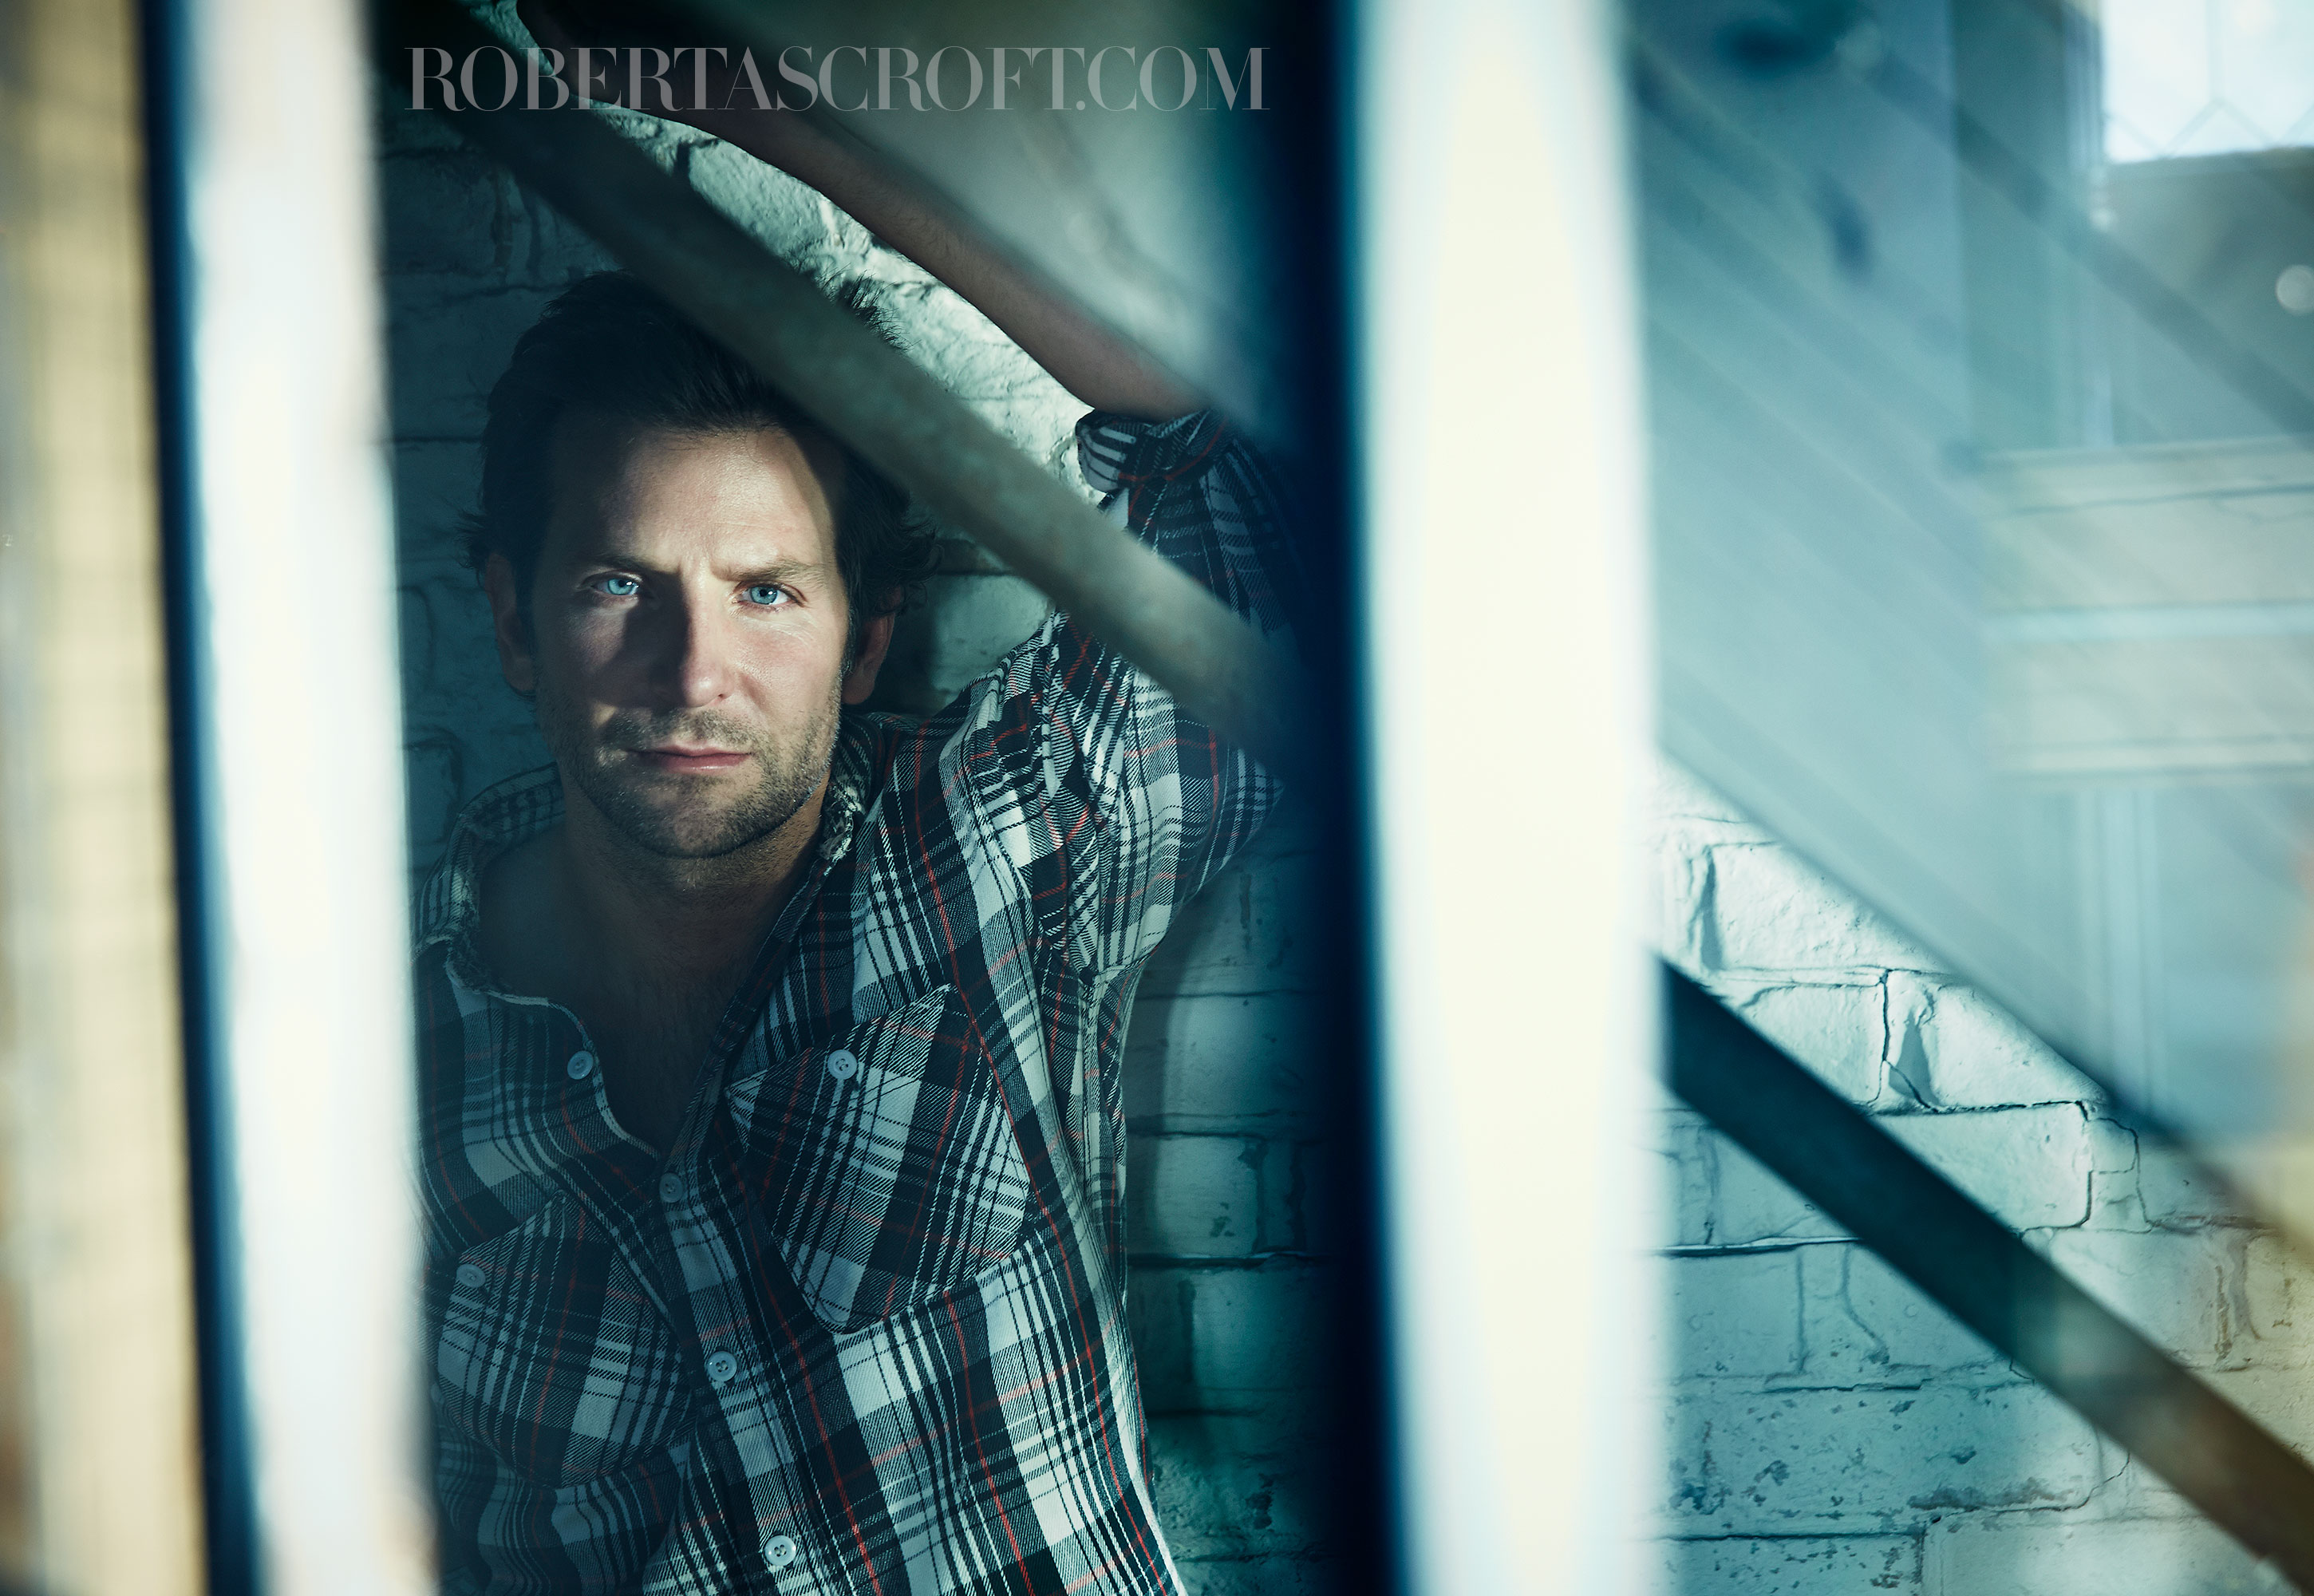 Bradley-Cooper-by-Robert-Ascroft-01